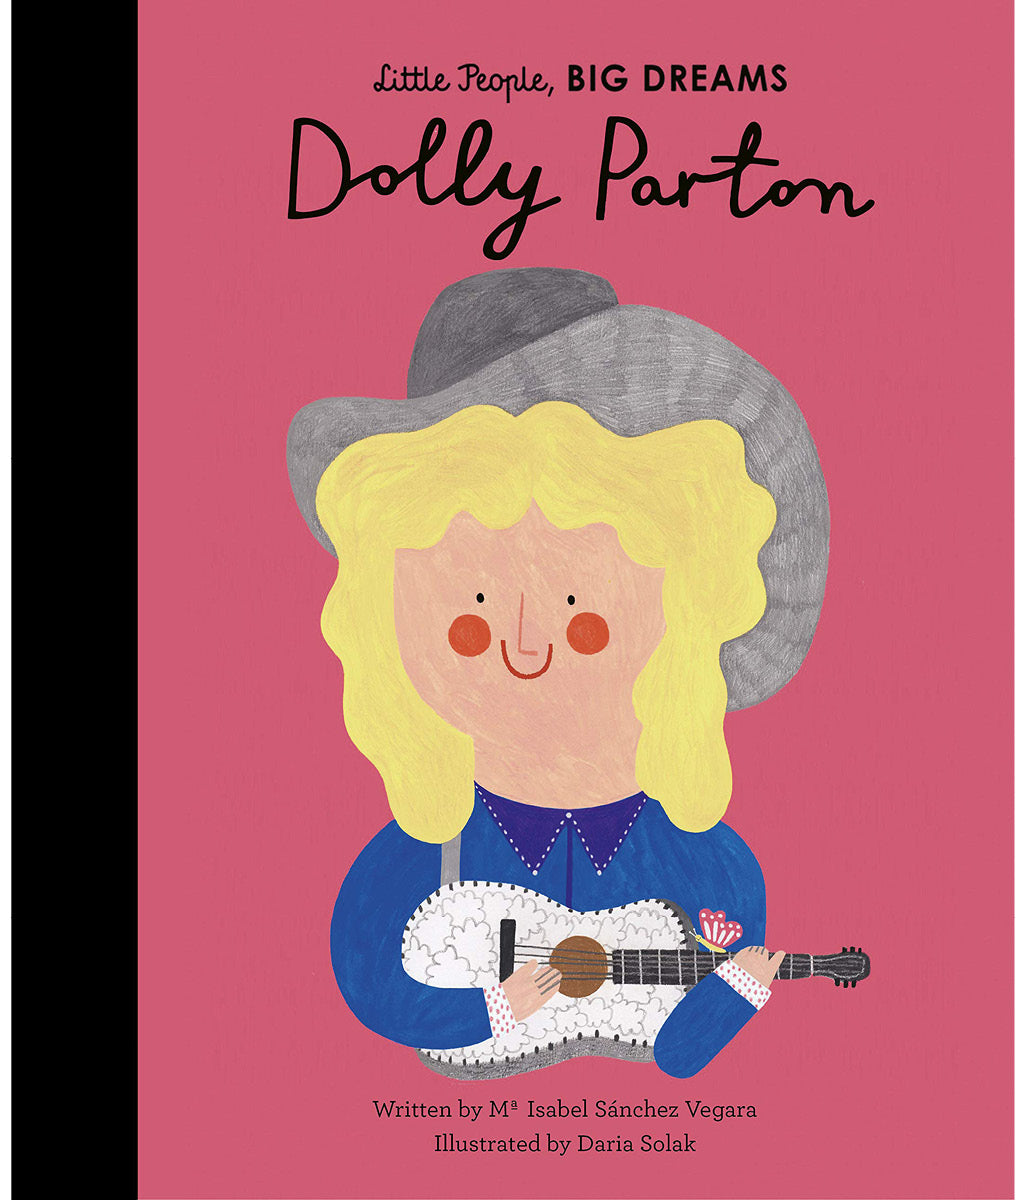 Dolly Parton by Maria Isabel Sanchez Vegara